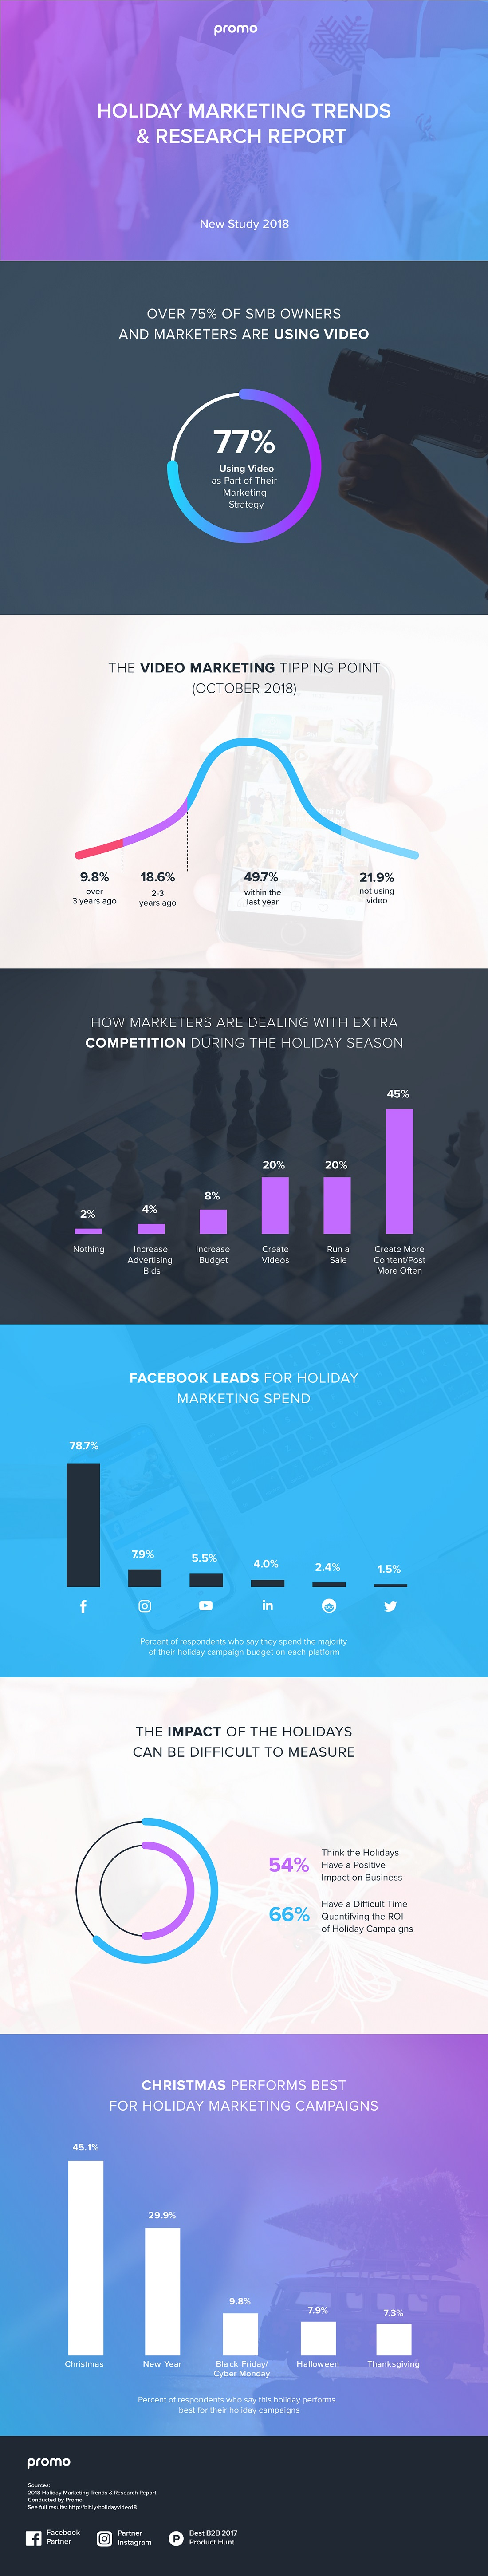 2018 Holiday Marketing Trends and Research Report (infographic)